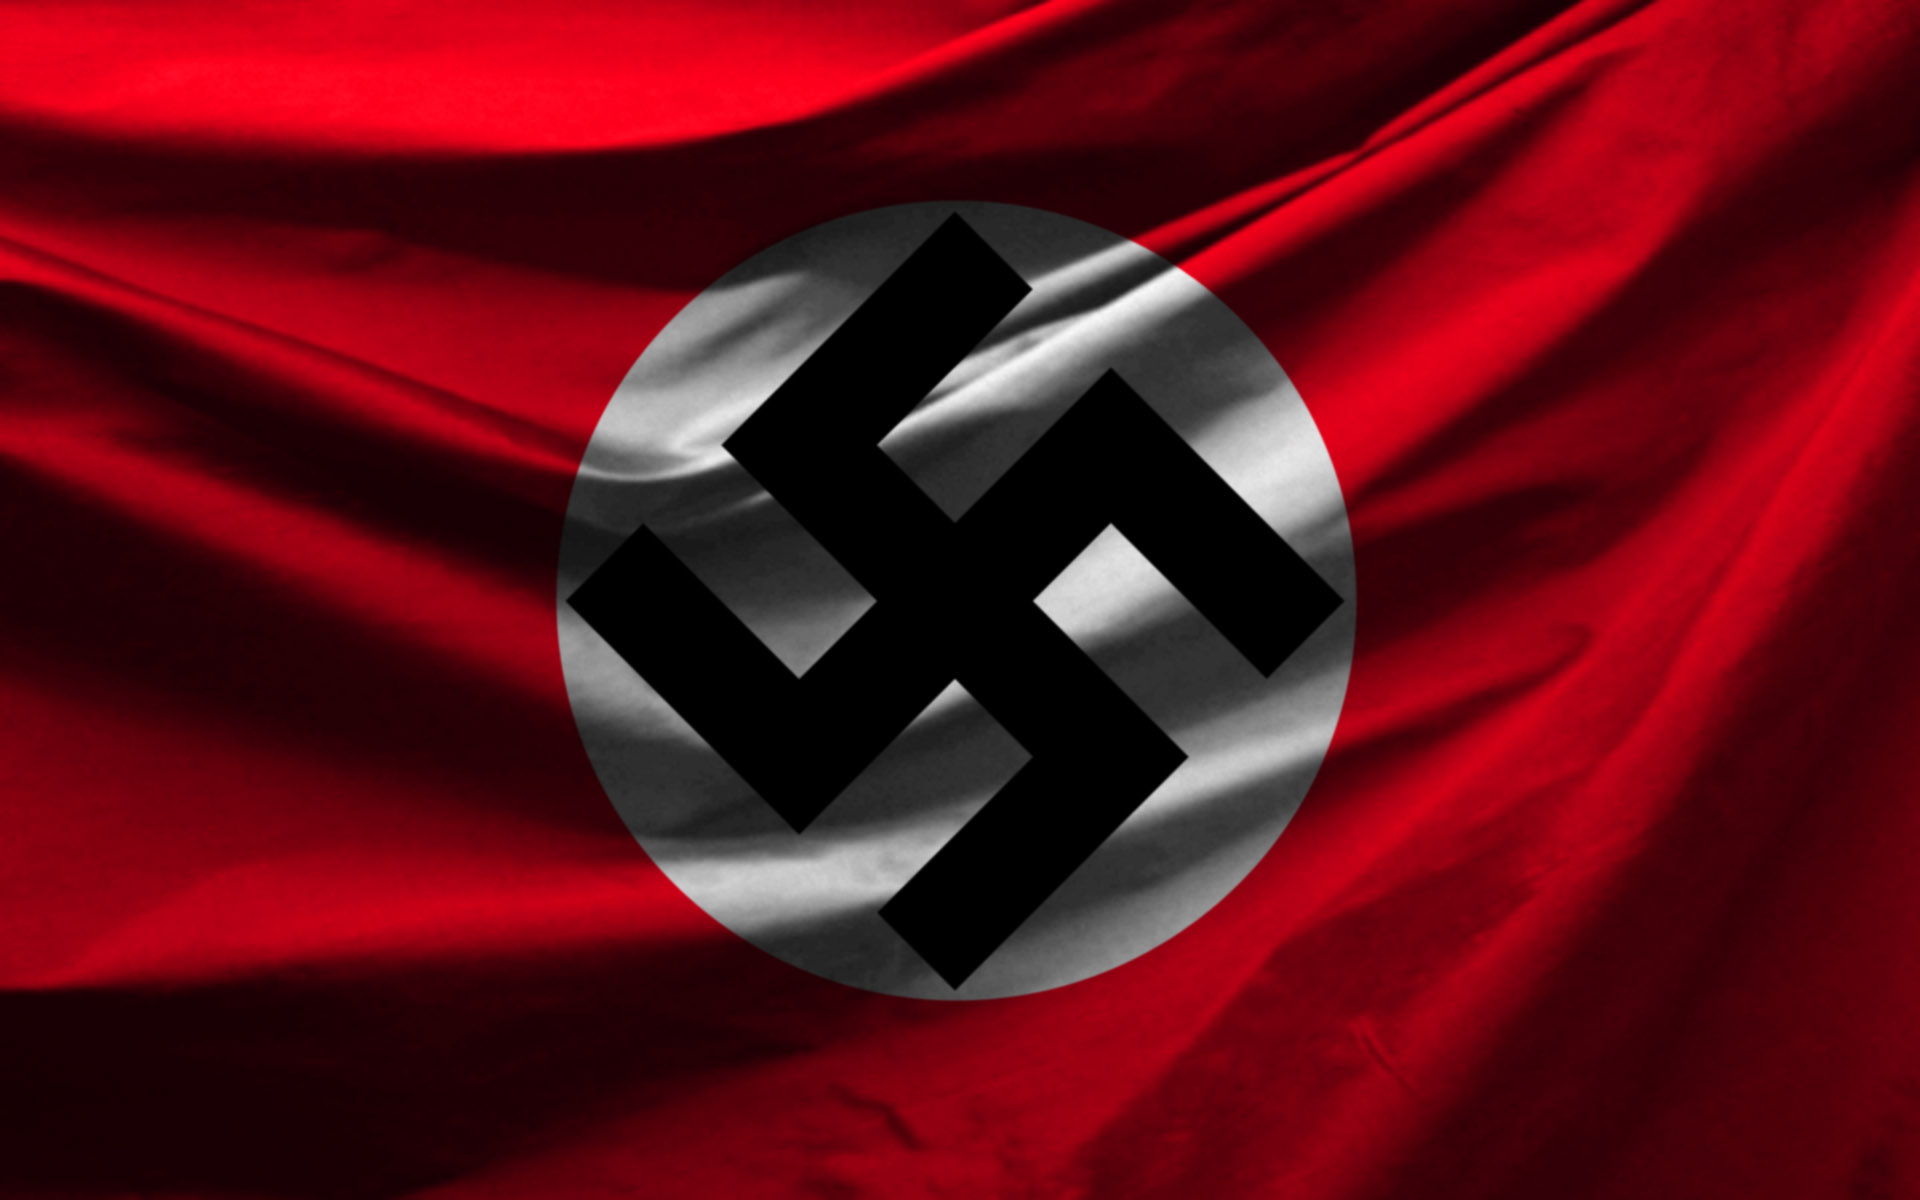 Adolf Hitler Wallpaper: Logo2013 04 Nazi-Adolf-Hitler-Wallpaper-Logo.jpg